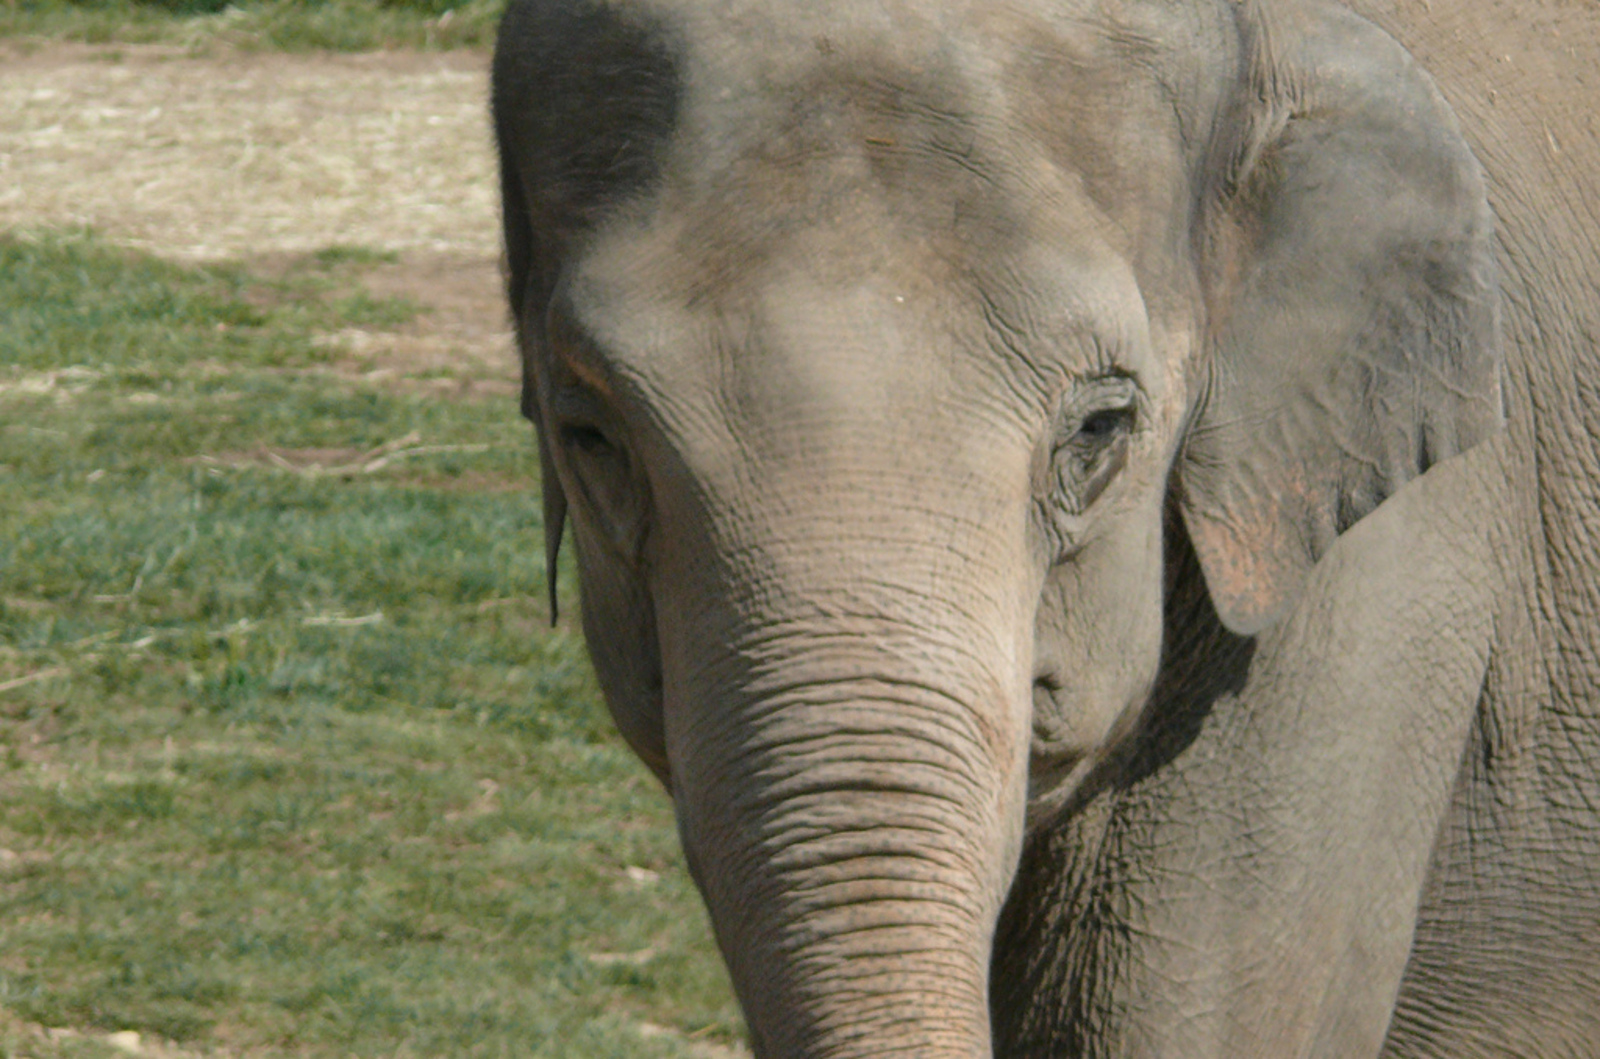 10 Years After the Bronx Zoo Ends Their Elephant Program, Happy Remains in a Solitary Prison